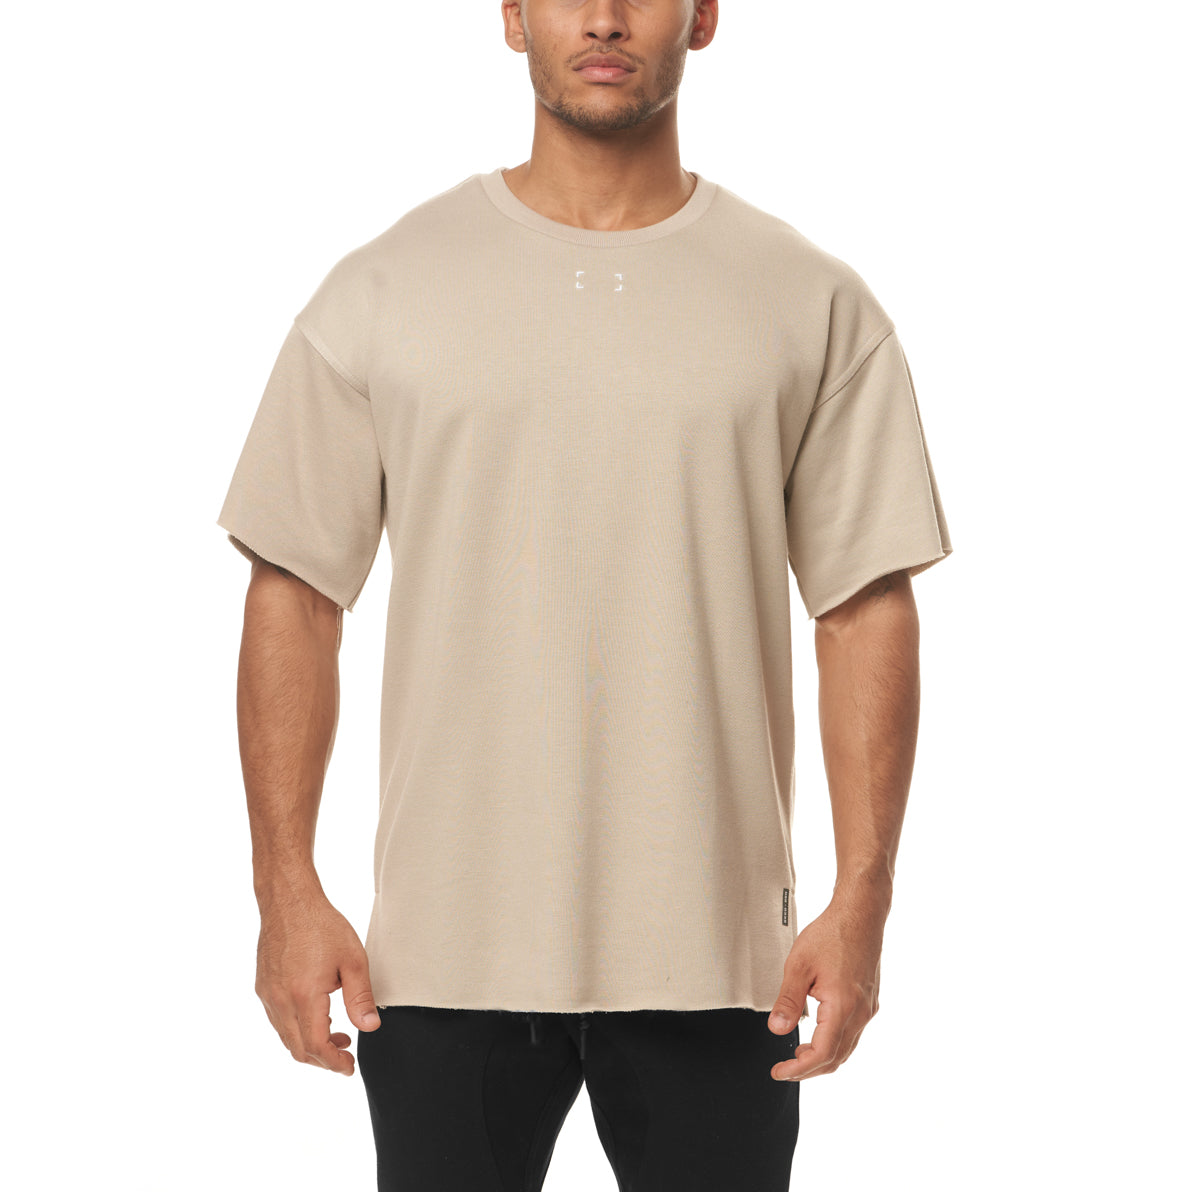 0339. French Terry Oversized Tee - Sand Smoke